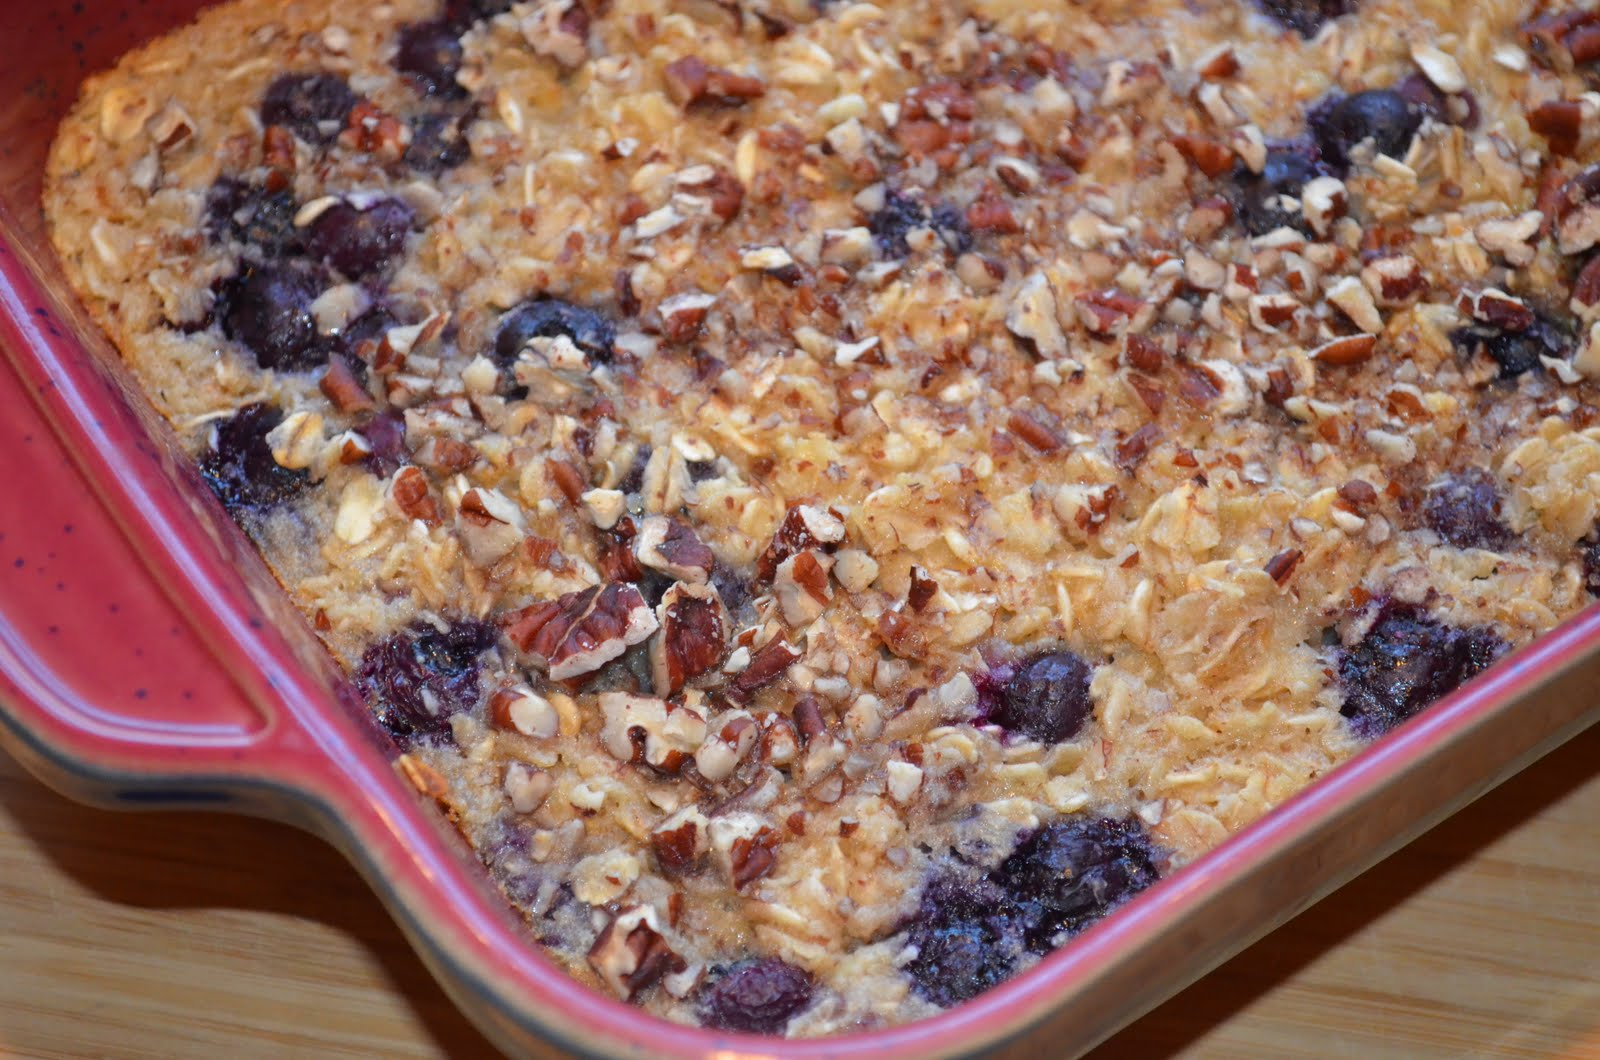 Blueberry Pecan Baked Oatmeal - Family Balance Sheet